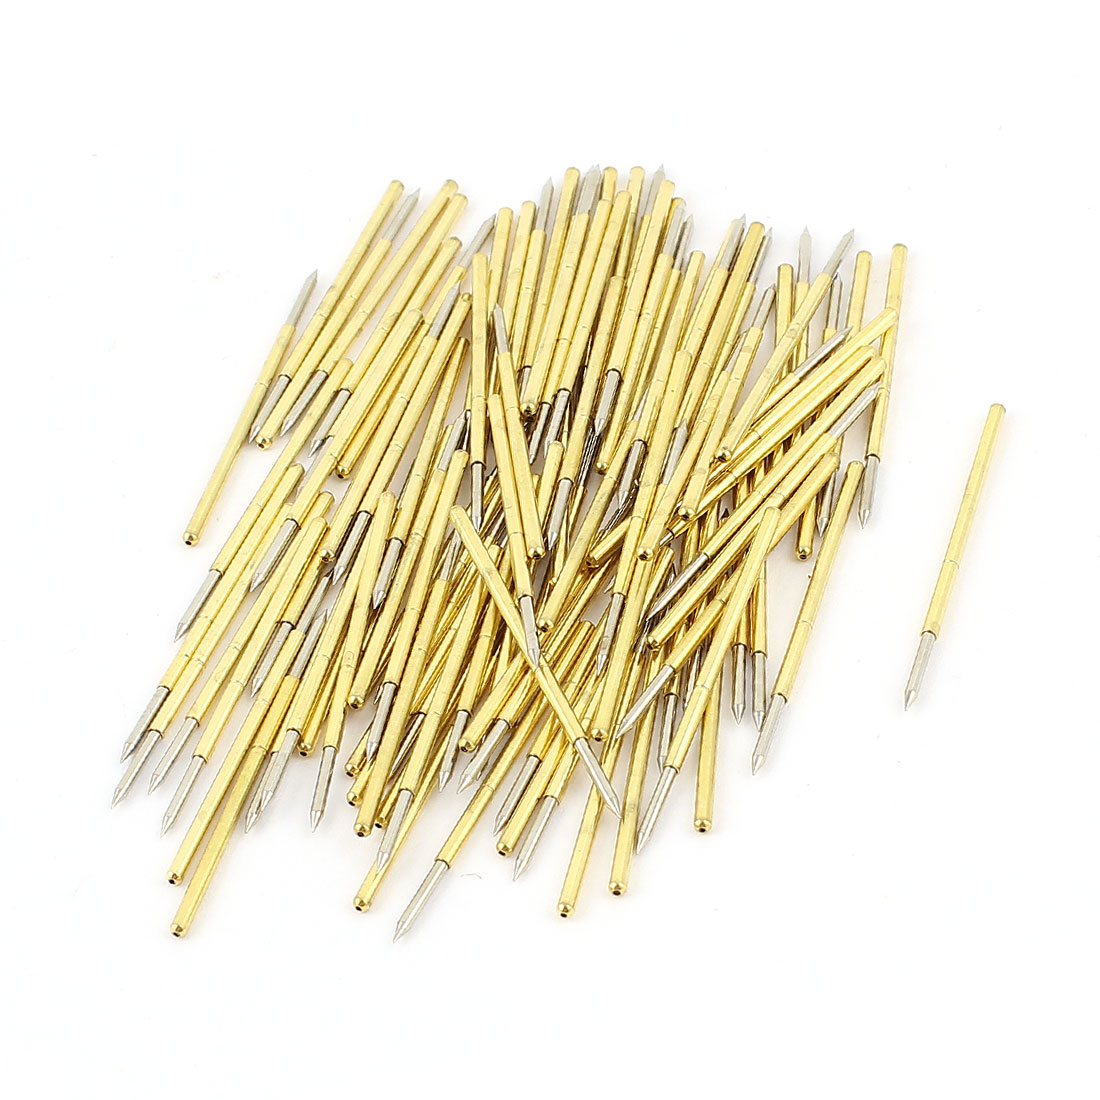 100Pcs P100-B1 Dia 1.36mm Length 33.35mm 180g Spring Test Probes Pin